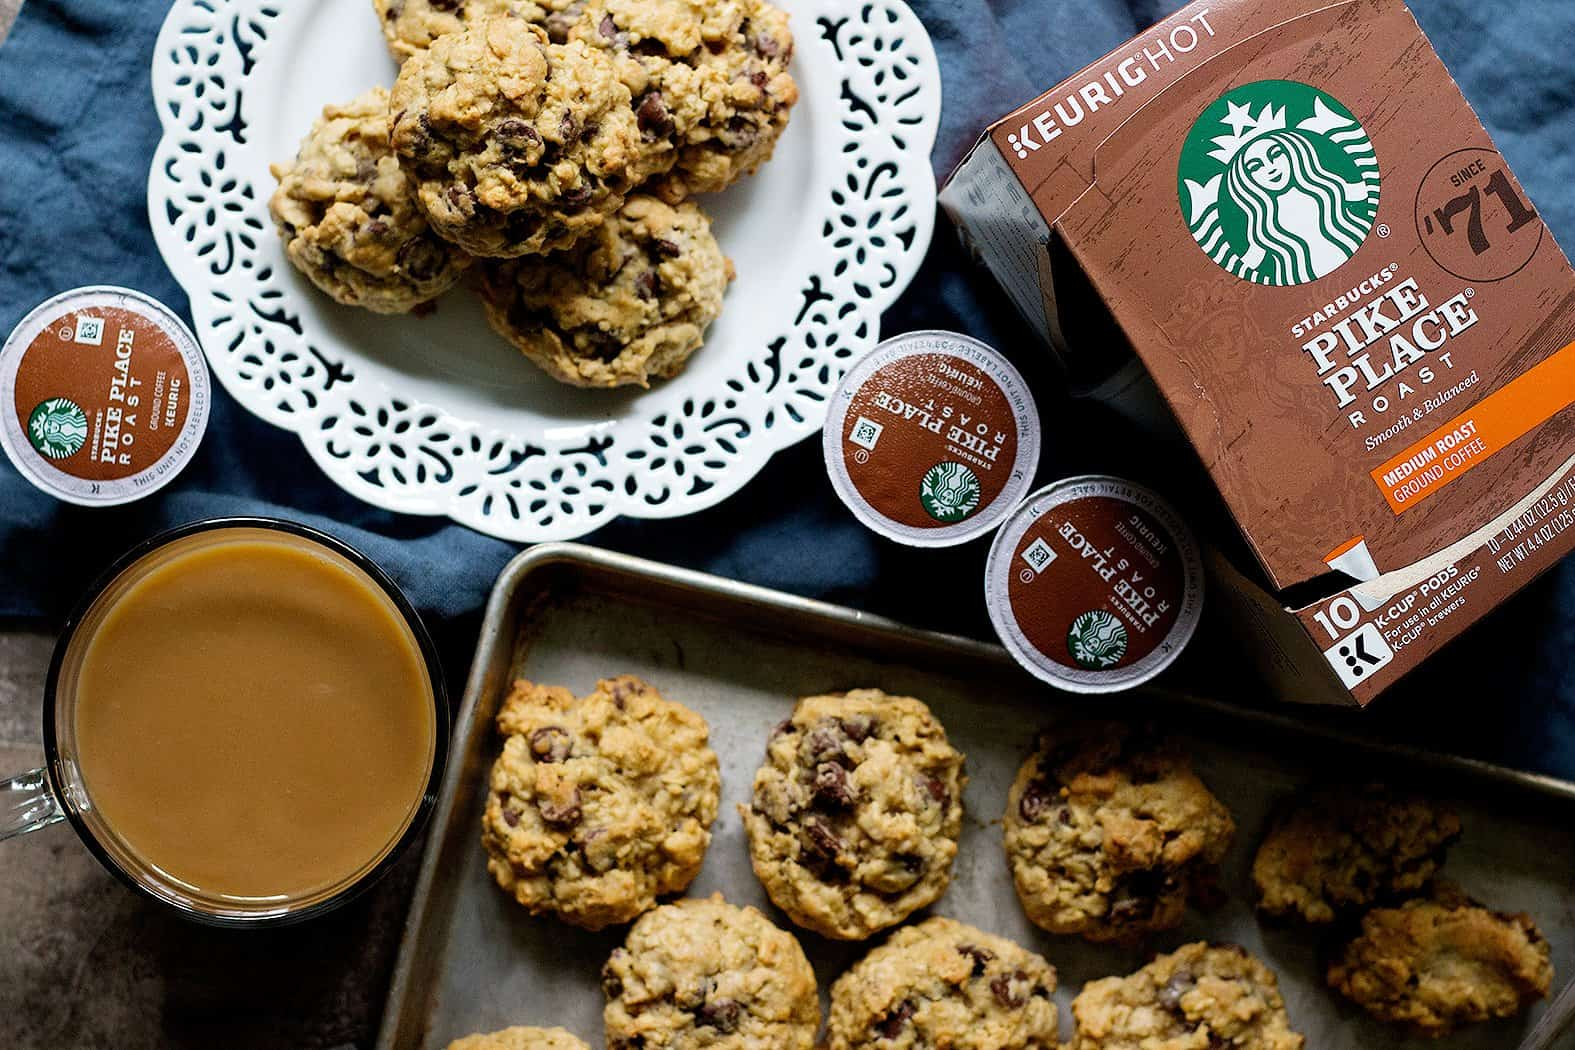 Serve chewy oatmeal chocolate chip cookies with coffee.